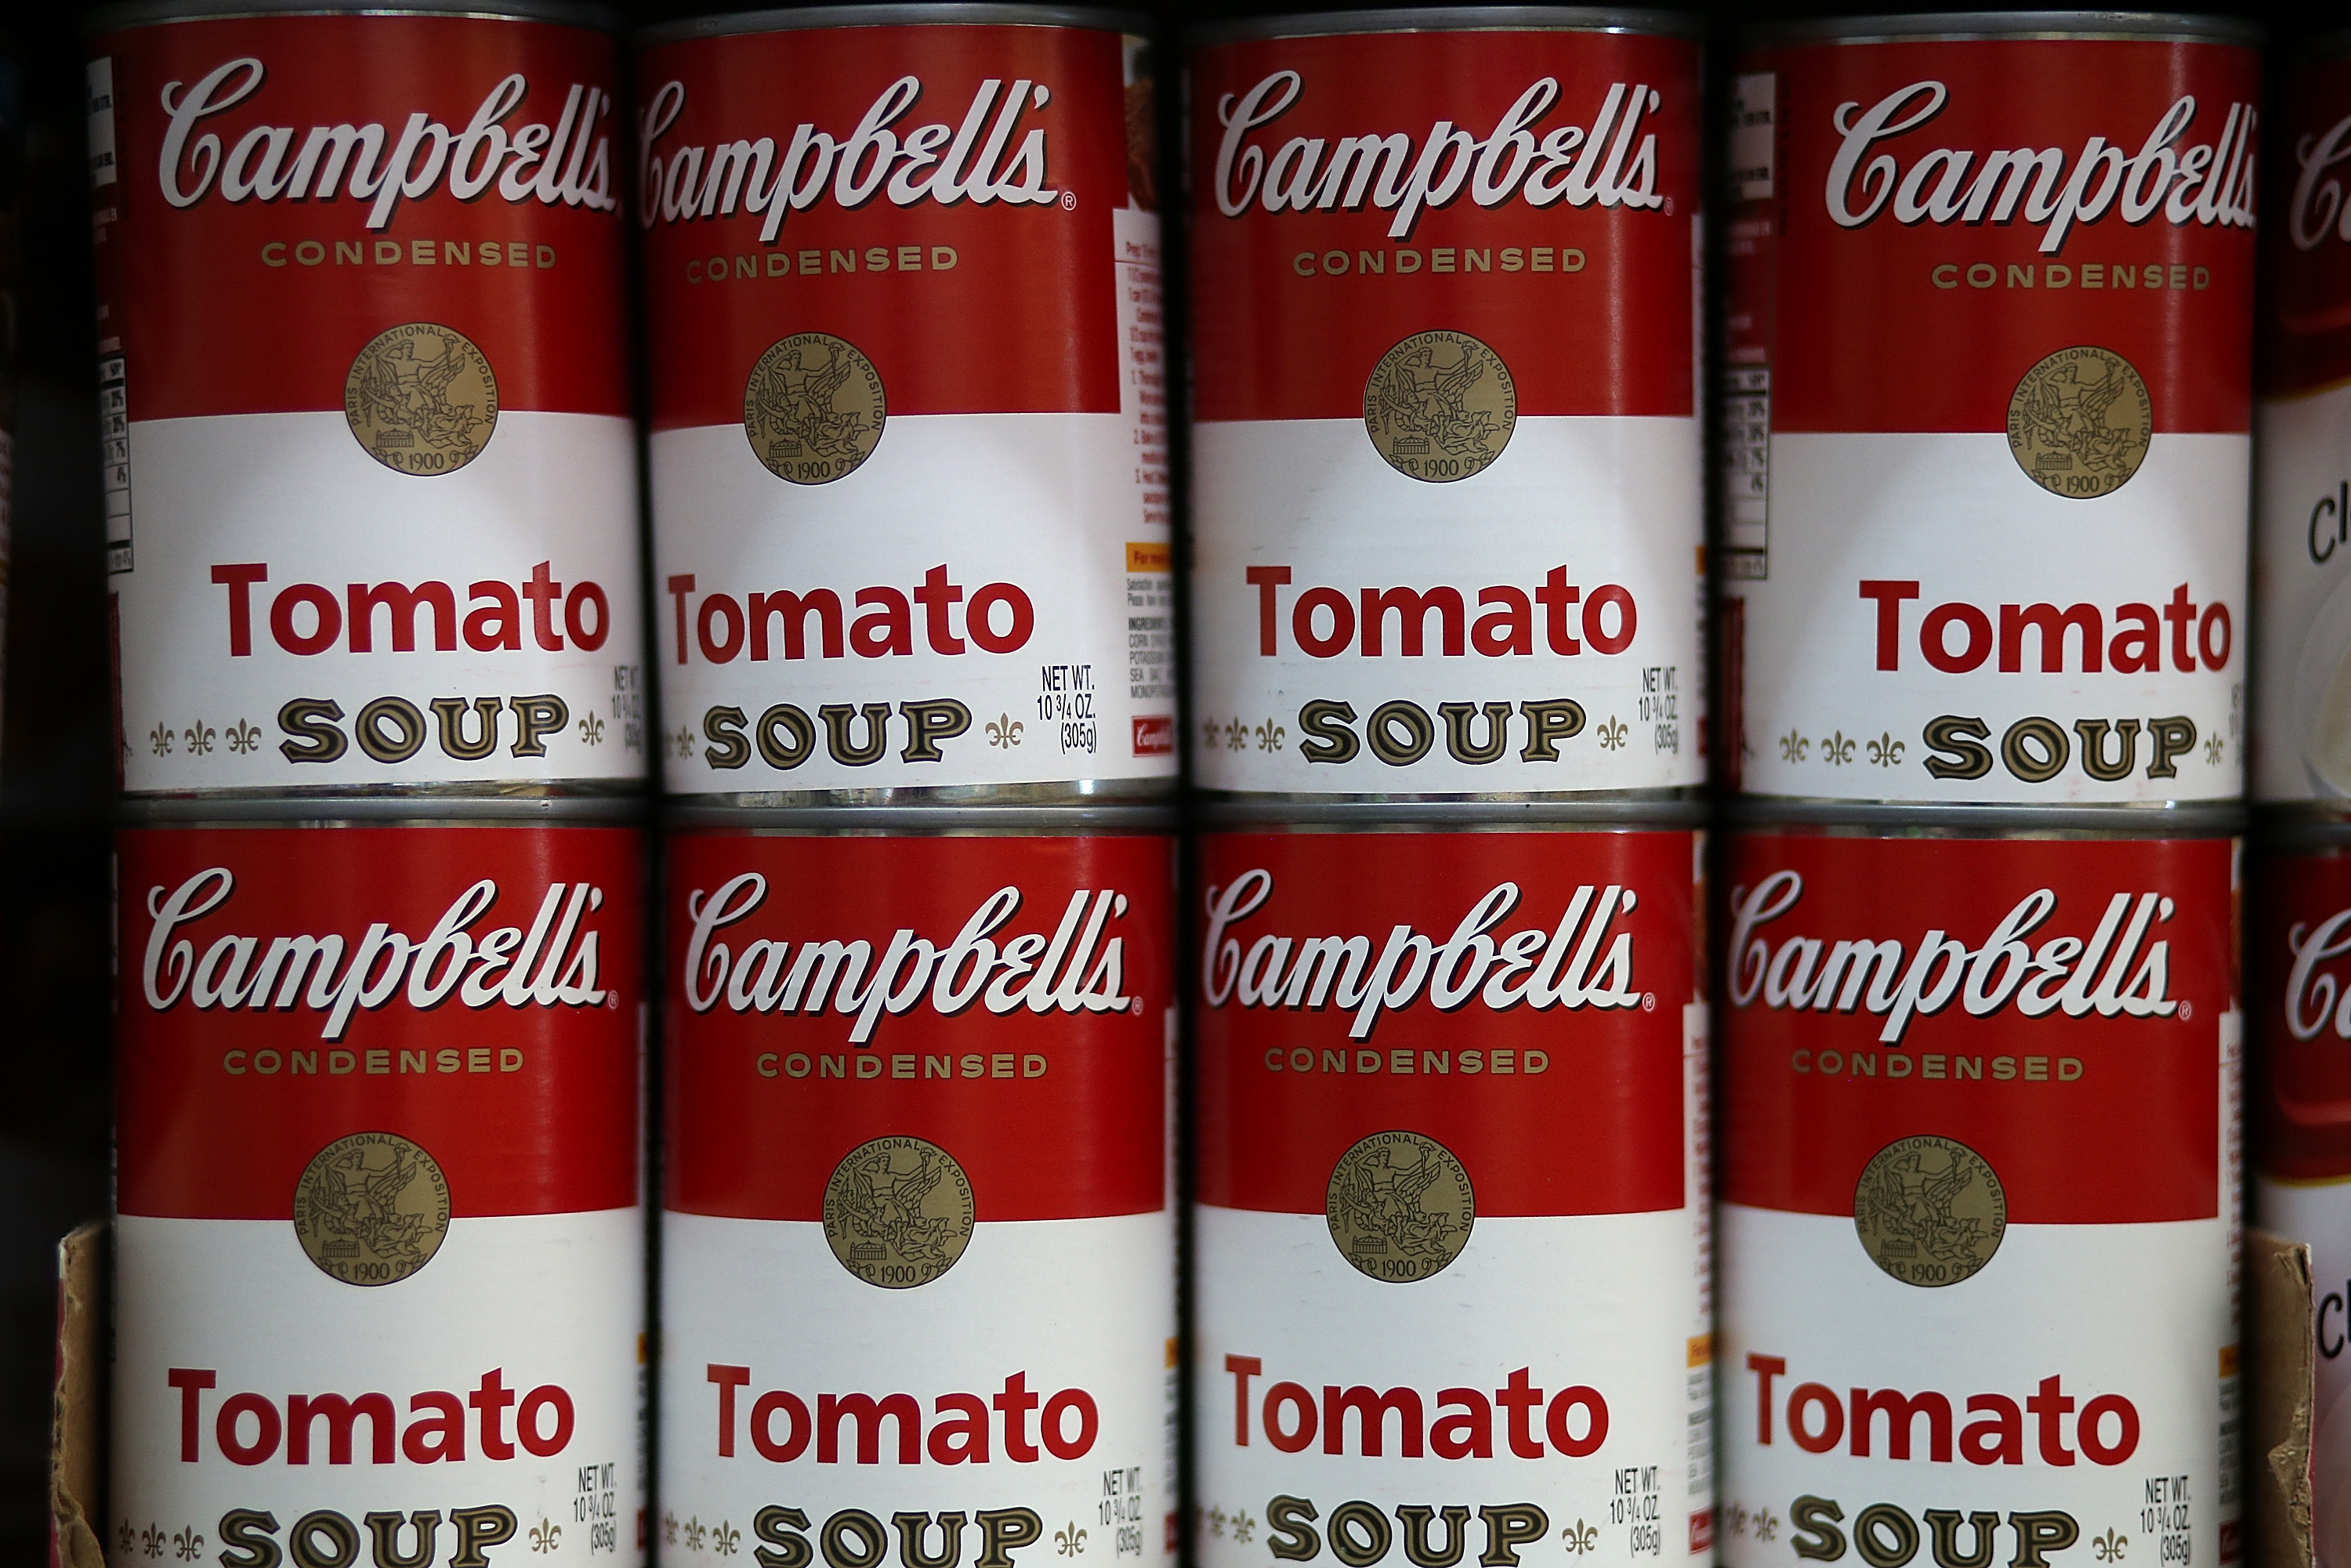 Cans of Campbell's tomato soup are displayed on a shelf at Santa Venetia Market on May 20, 2013 in San Rafael, California.